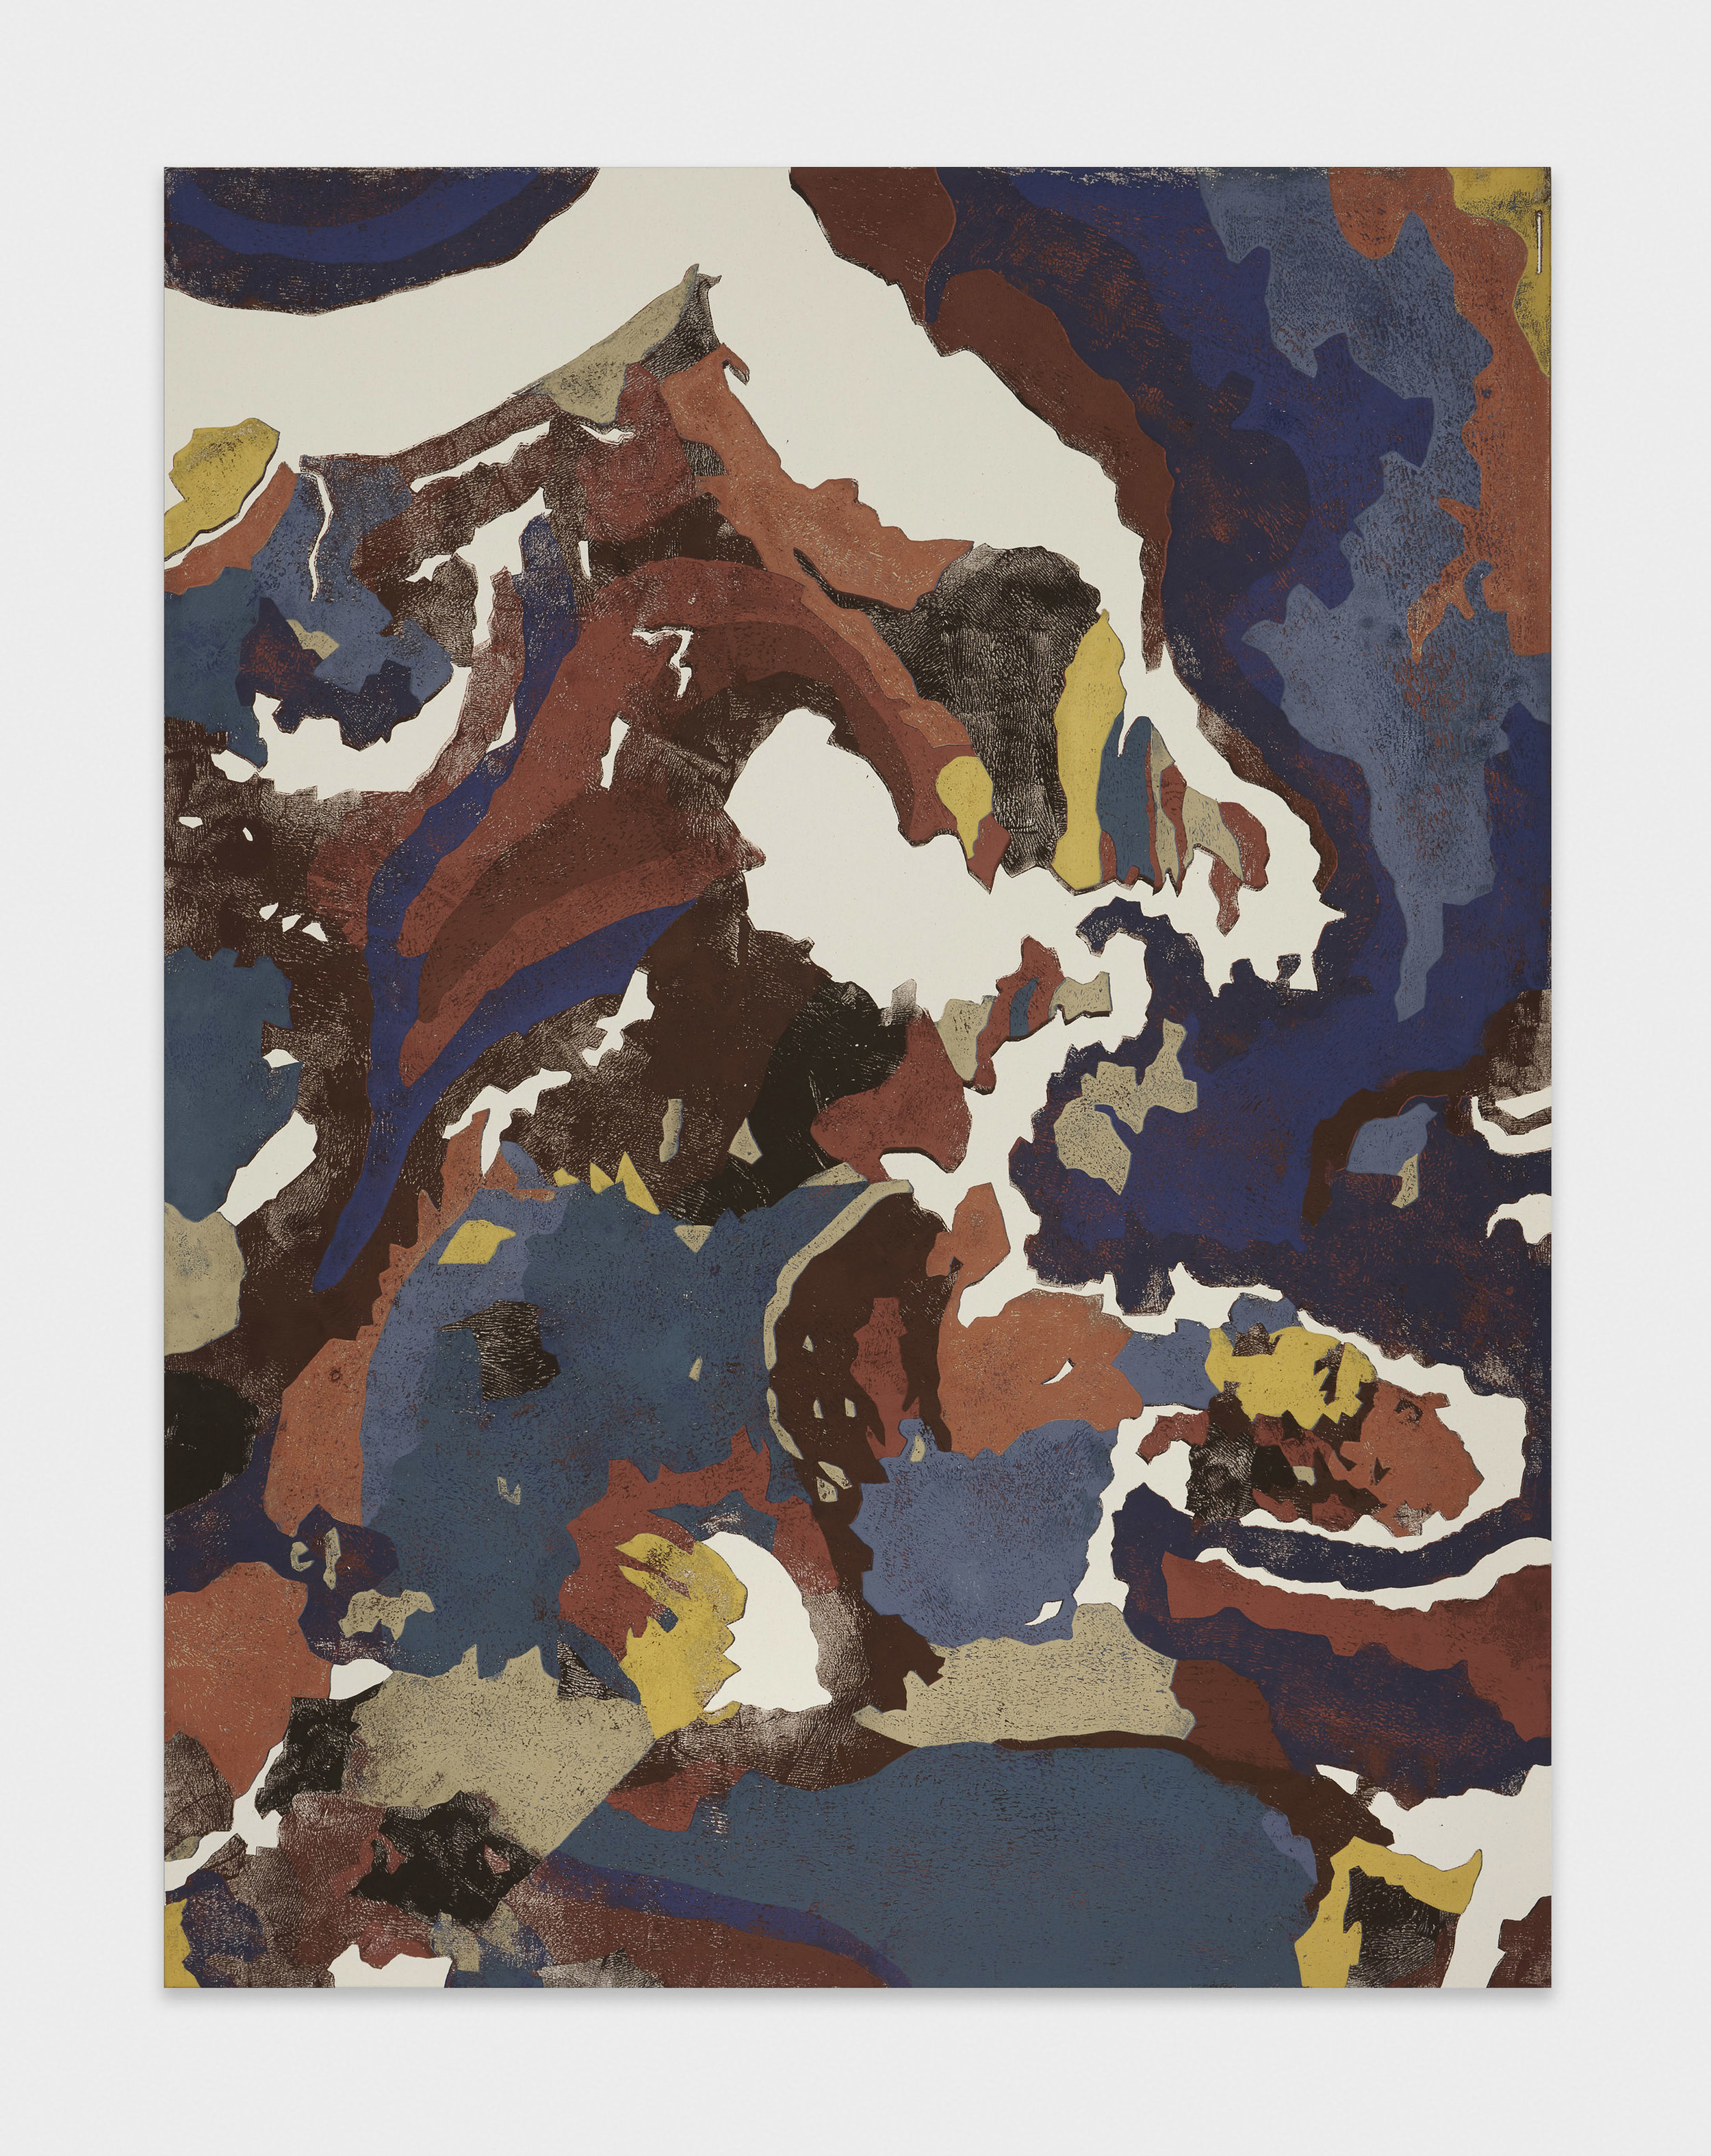 Kour Pour  Neotectonic Map Tokyo  2016 Block printing ink on canvas 78 3/4h x 60w in